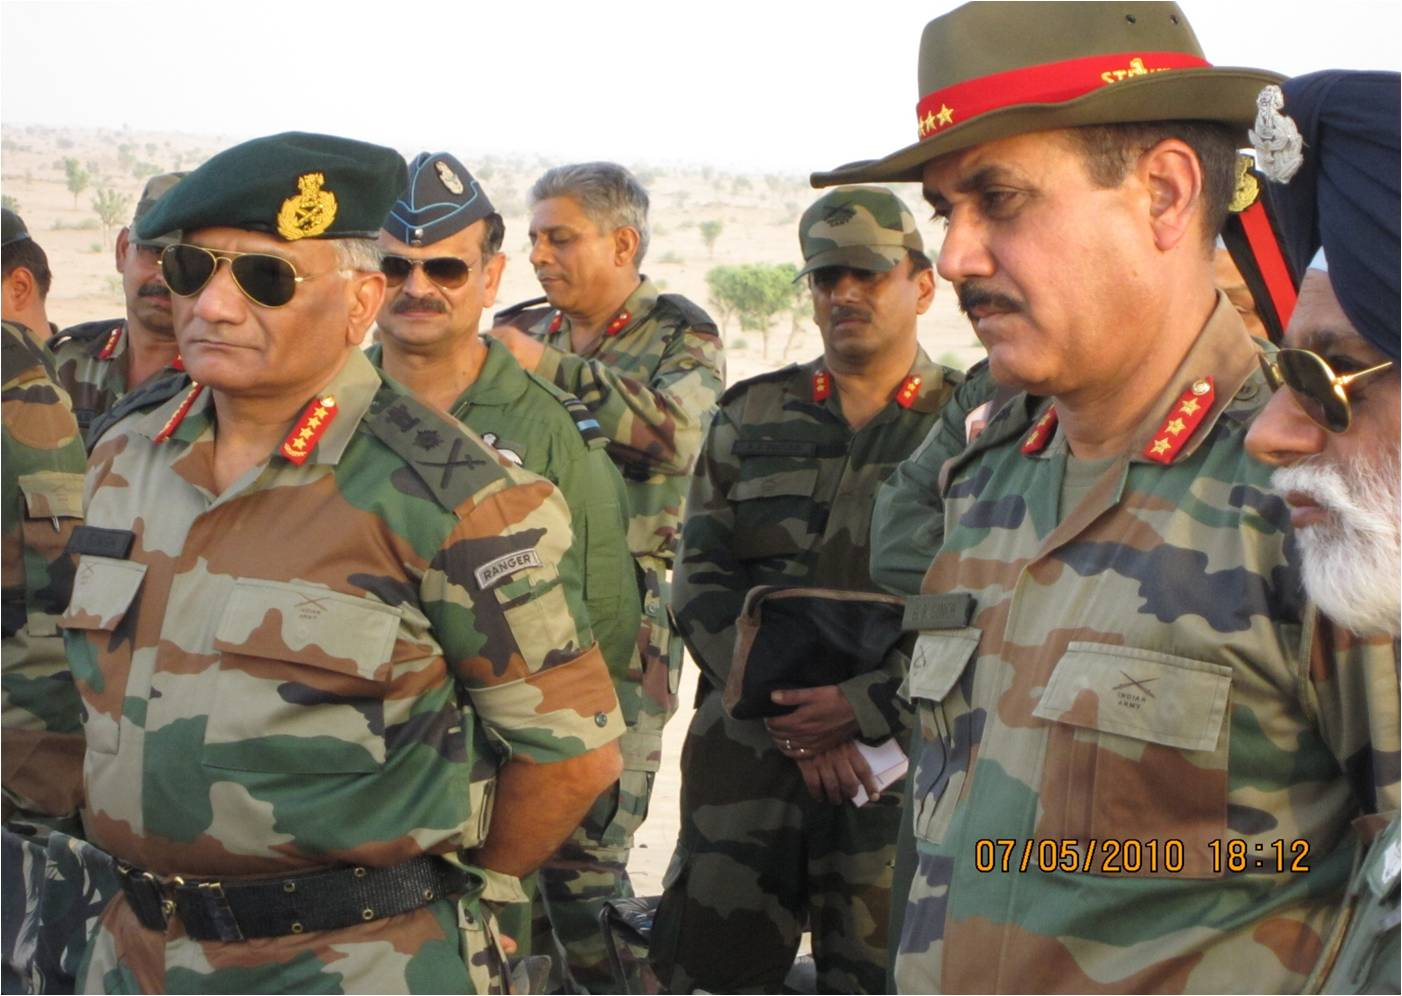 PHOTOS: Indian Army Chief Visits Strike Corps For Exercise